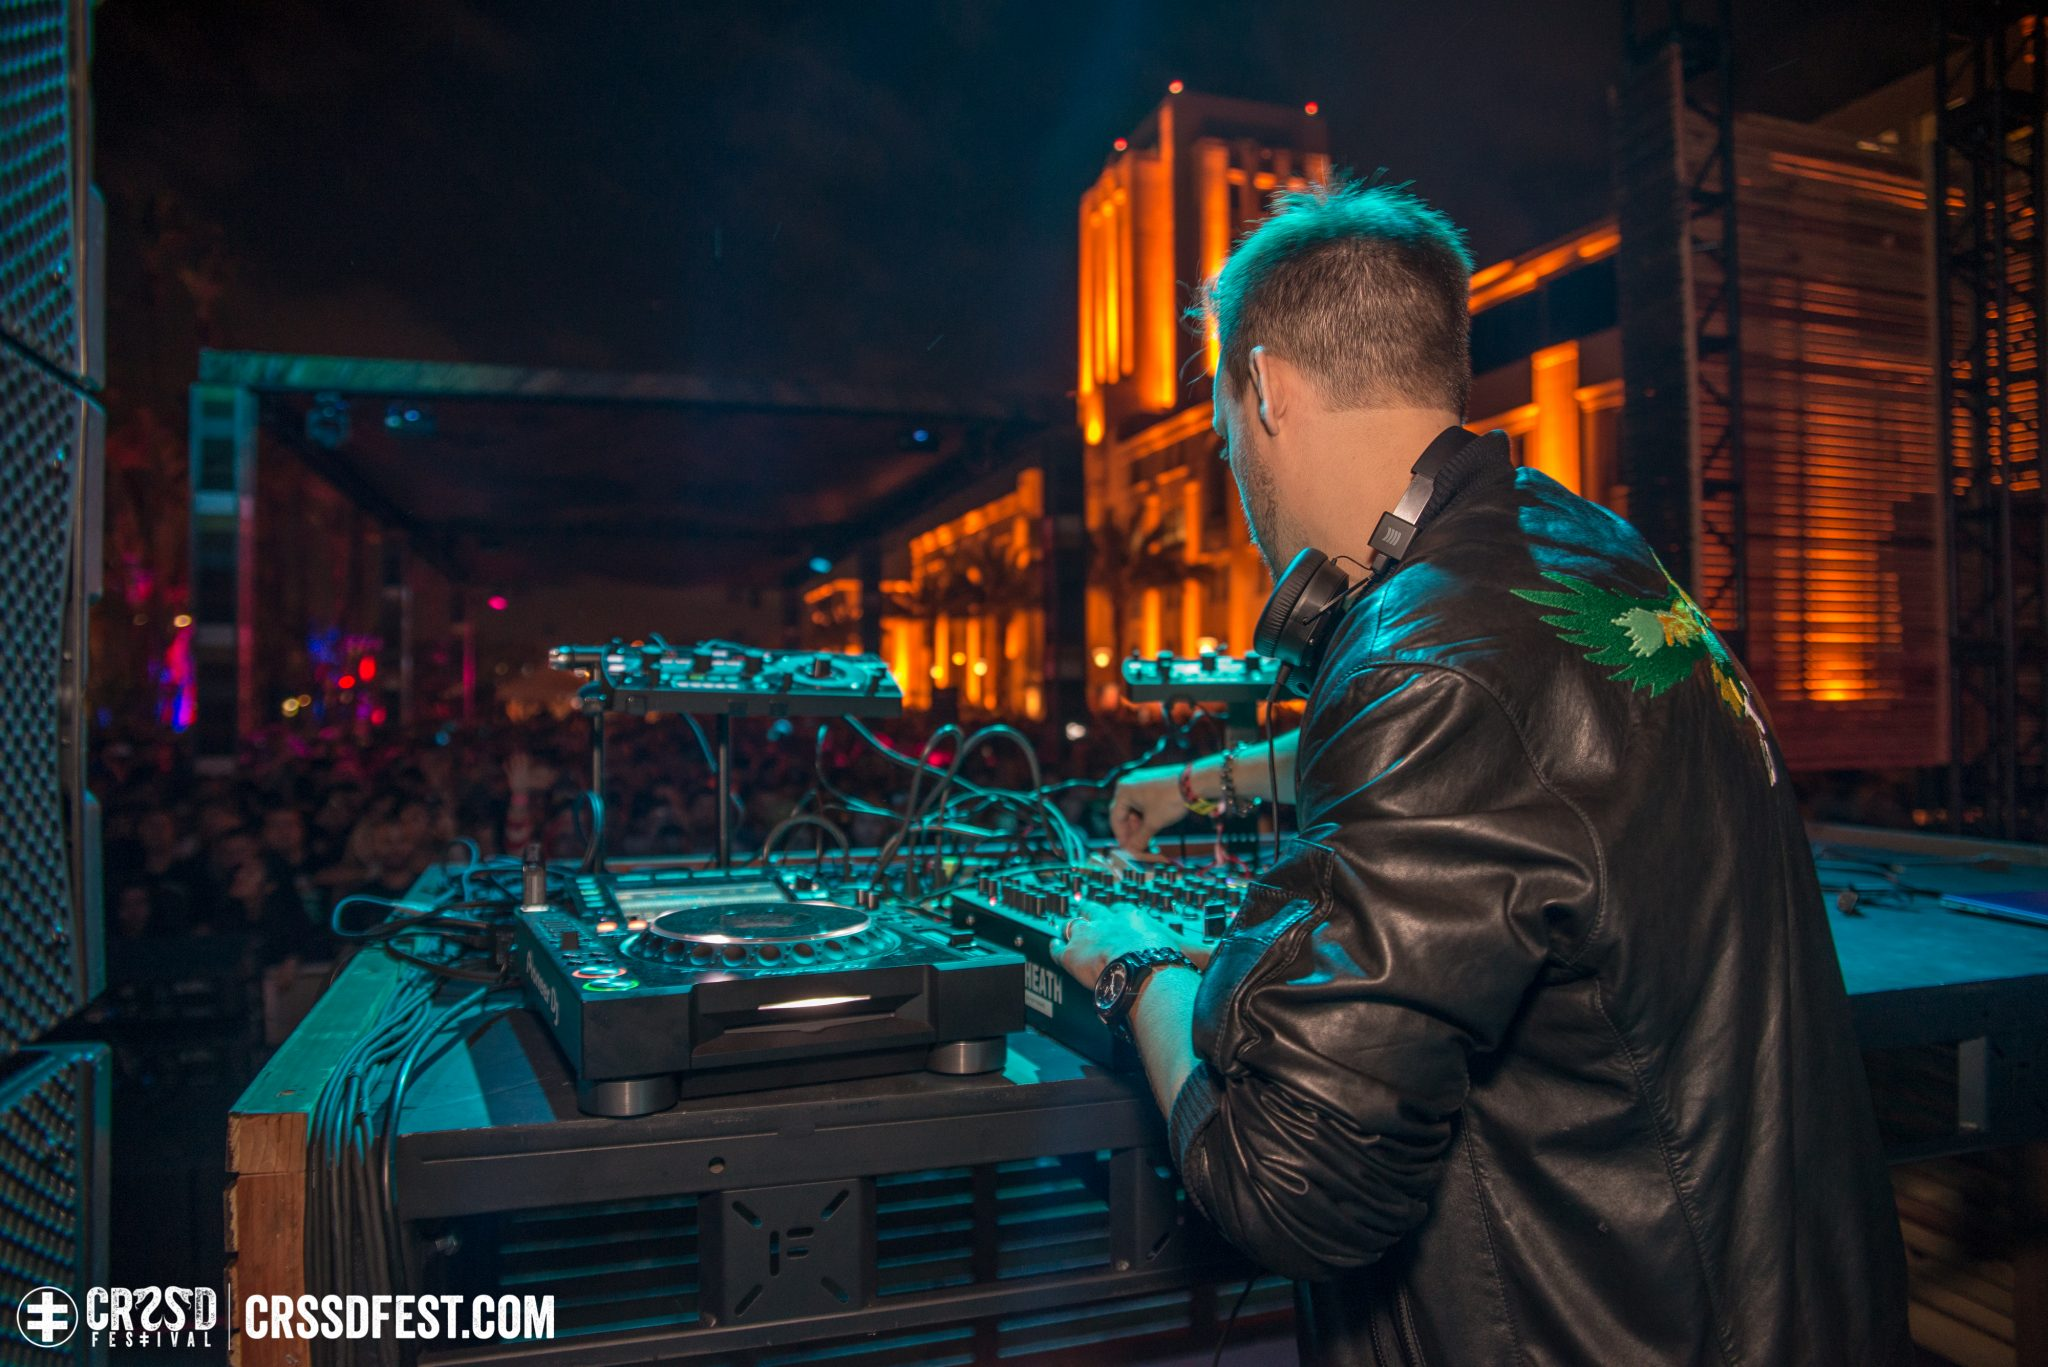 Maceo Plex closing out The City Steps - Photo by Glen Silva